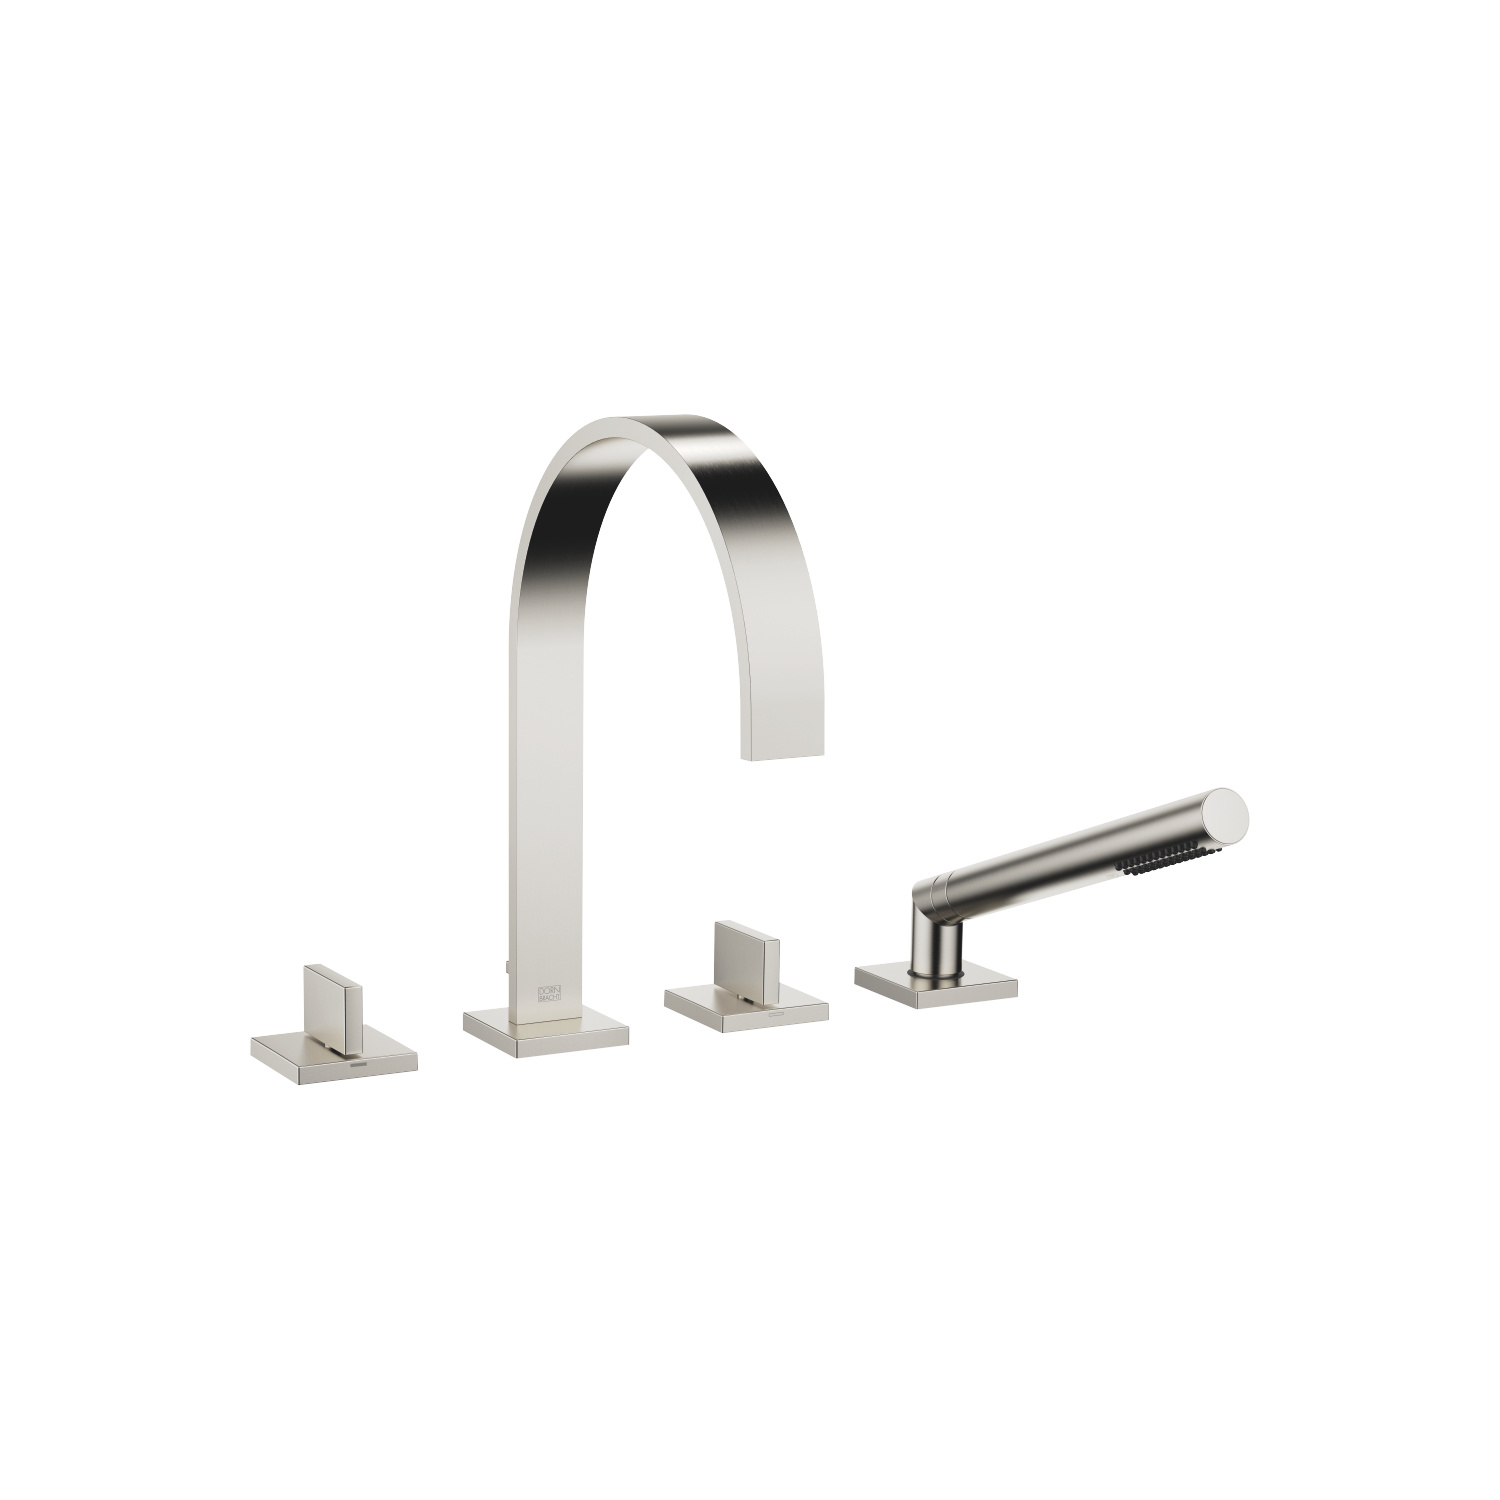 Bath shower set for bath rim or tile edge installation - platinum matt